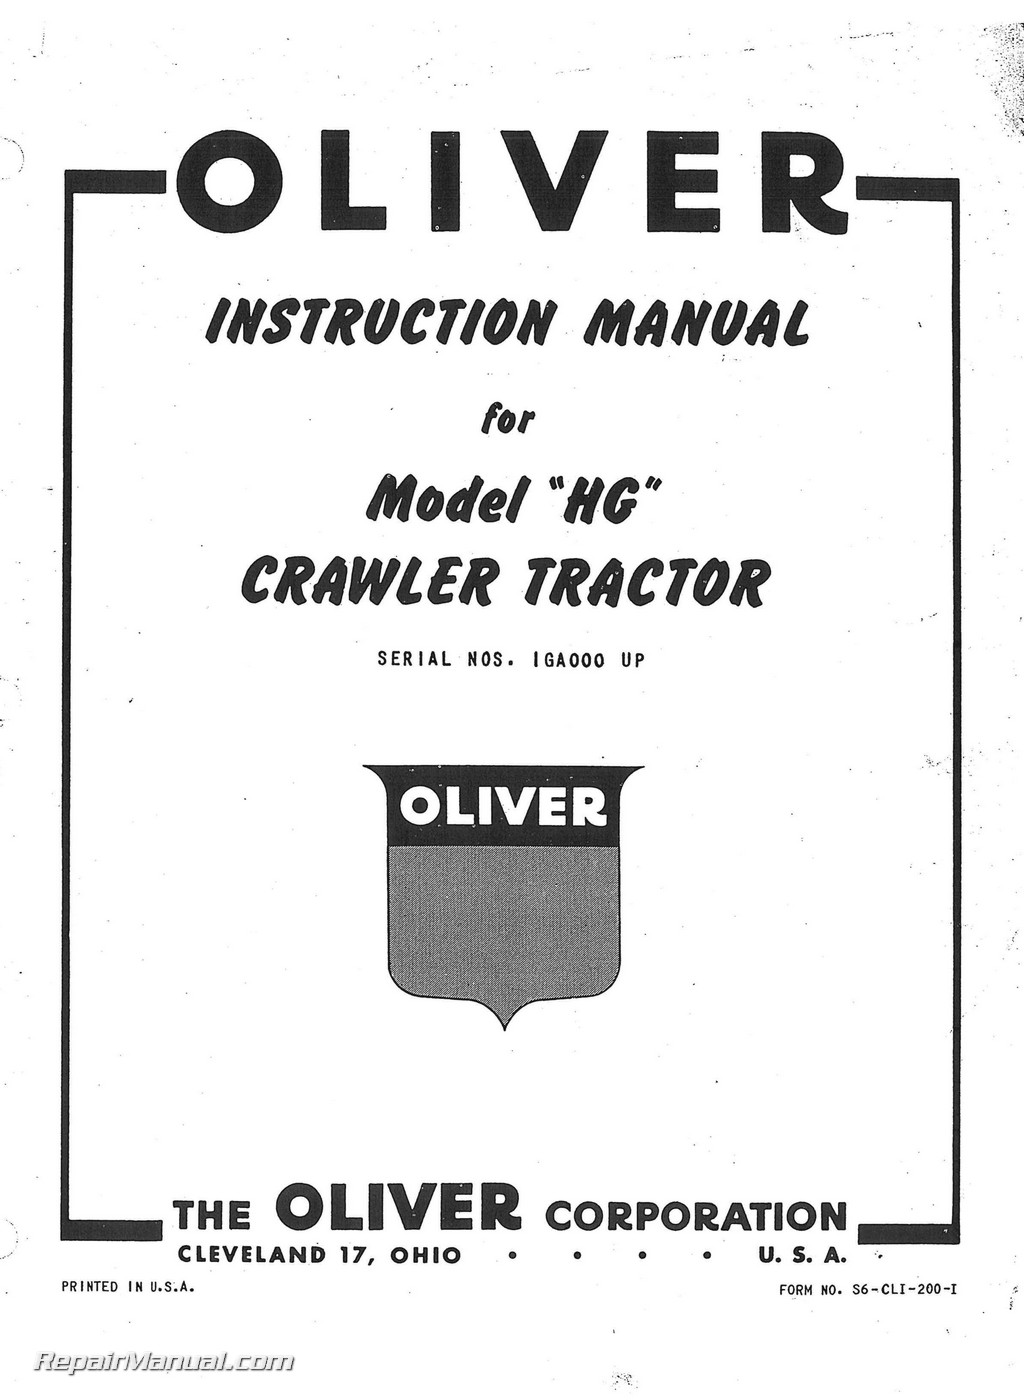 Model A Ford Wiring Diagram likewise Oliver 60 Engine Painting Pic as well Oliver Tractor Schematics also Basic 3 Wire Alternator Wiring Question 187712 additionally John Deere 7000 Planter Parts Diagram. on oliver 770 wiring diagram